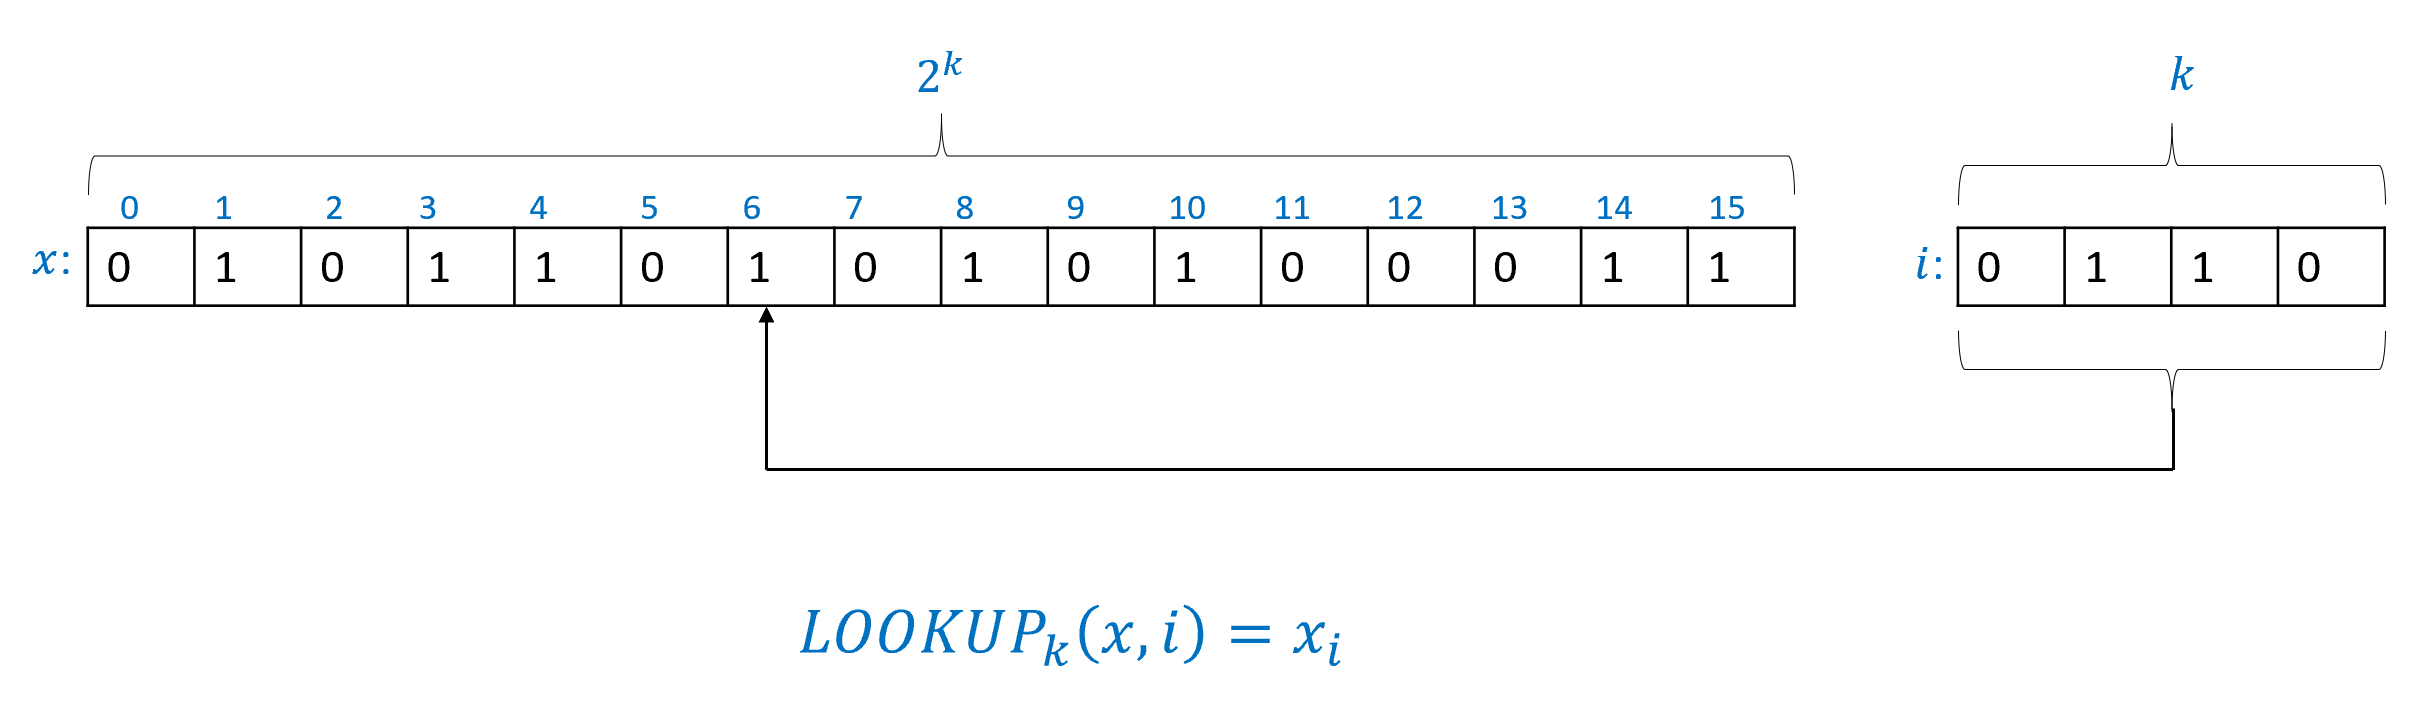 4.5: The \ensuremath{\mathit{LOOKUP}}_k function takes an input in \{0,1\}^{2^k+k}, which we denote by x,i (with x\in \{0,1\}^{2^k} and i \in \{0,1\}^k). The output is x_i: the i-th coordinate of x, where we identify i as a number in [k] using the binary representation. In the above example x\in \{0,1\}^{16} and i\in \{0,1\}^4. Since i=0110 is the binary representation of the number 6, the output of \ensuremath{\mathit{LOOKUP}}_4(x,i) in this case is x_6 = 1.